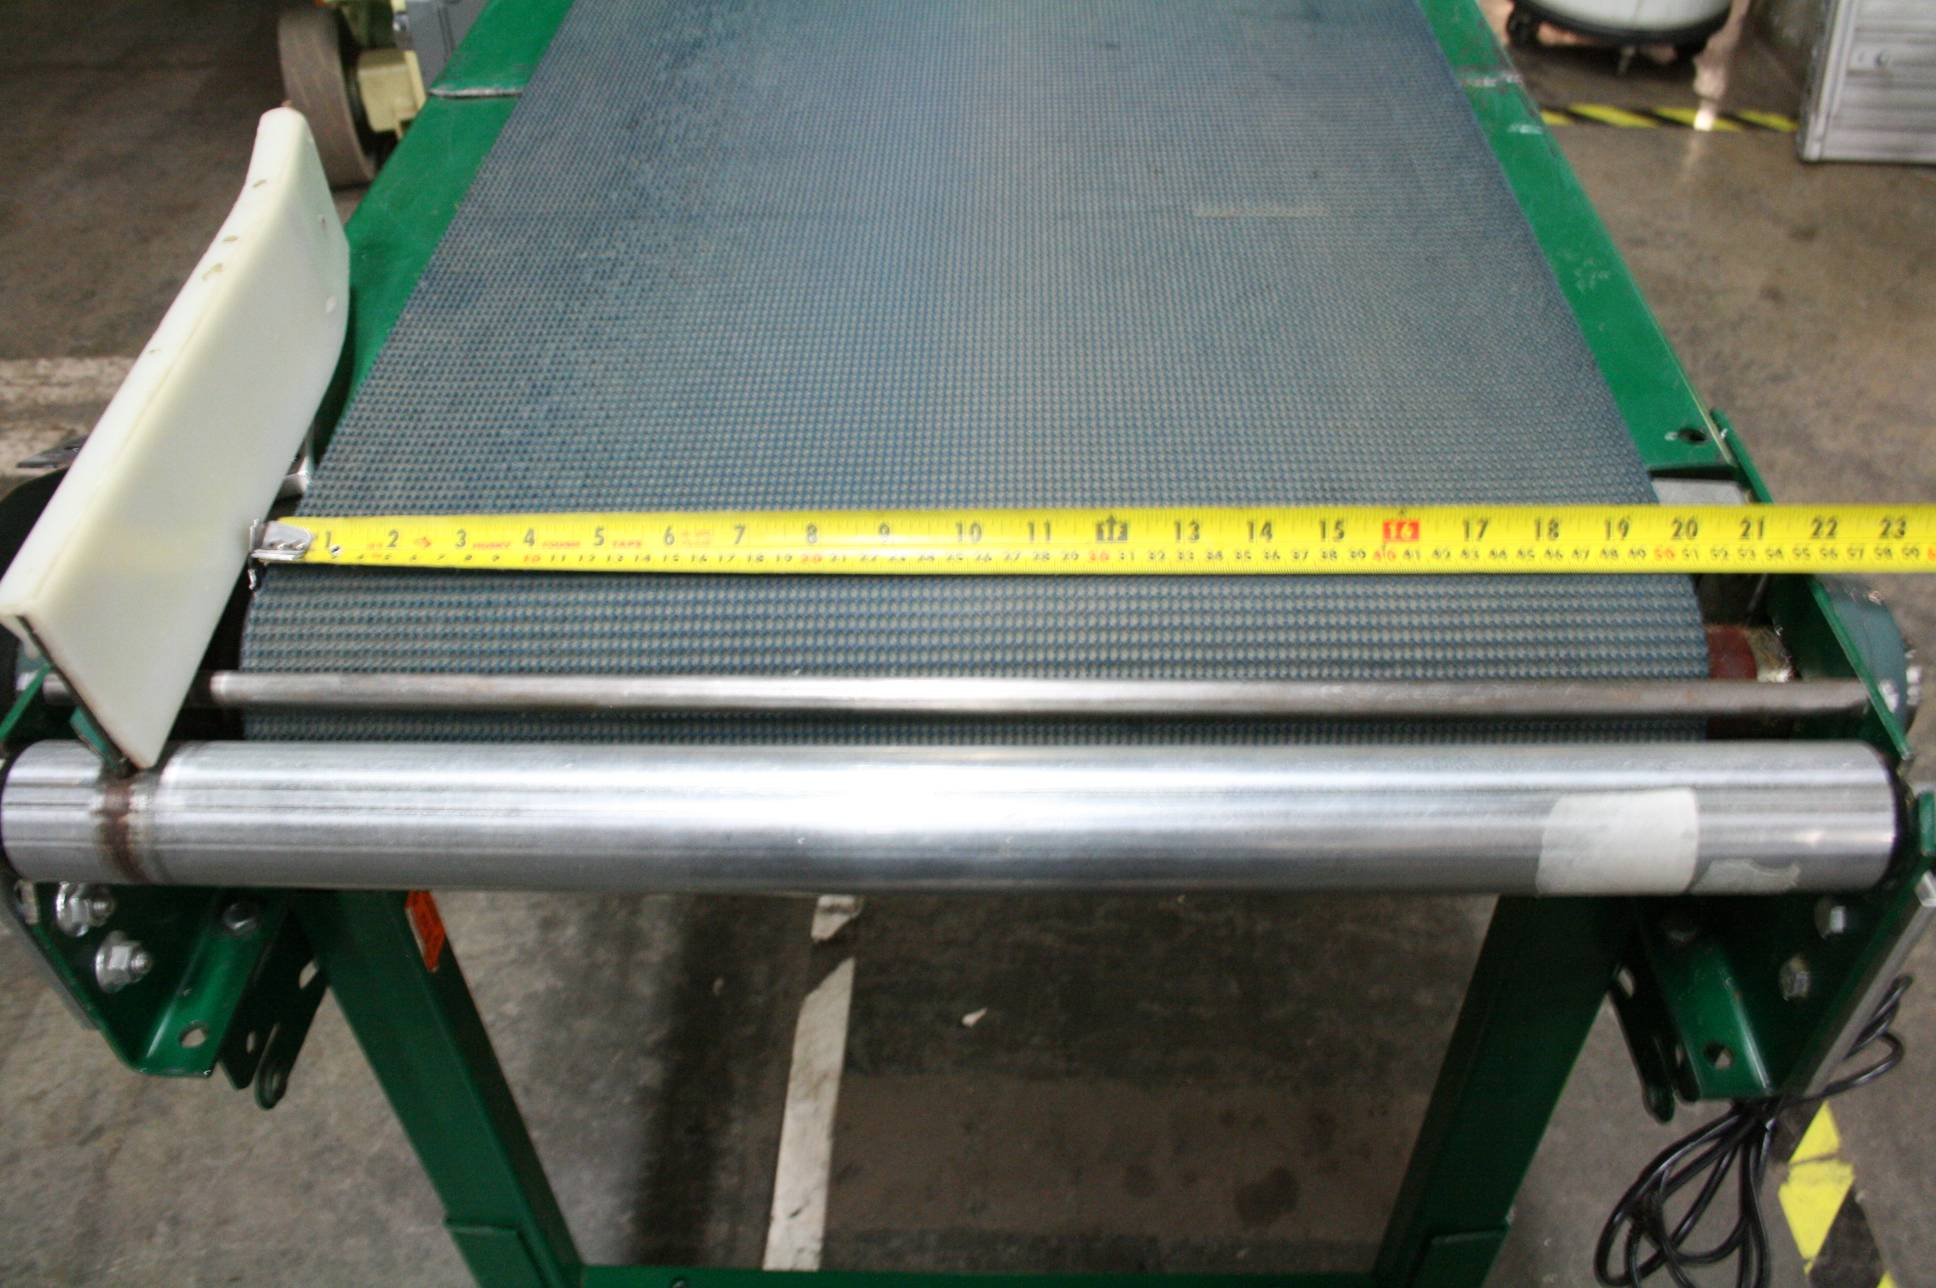 Alvey 48 x 20 steel belt conveyor with interroll 24v Motorized conveyor belt